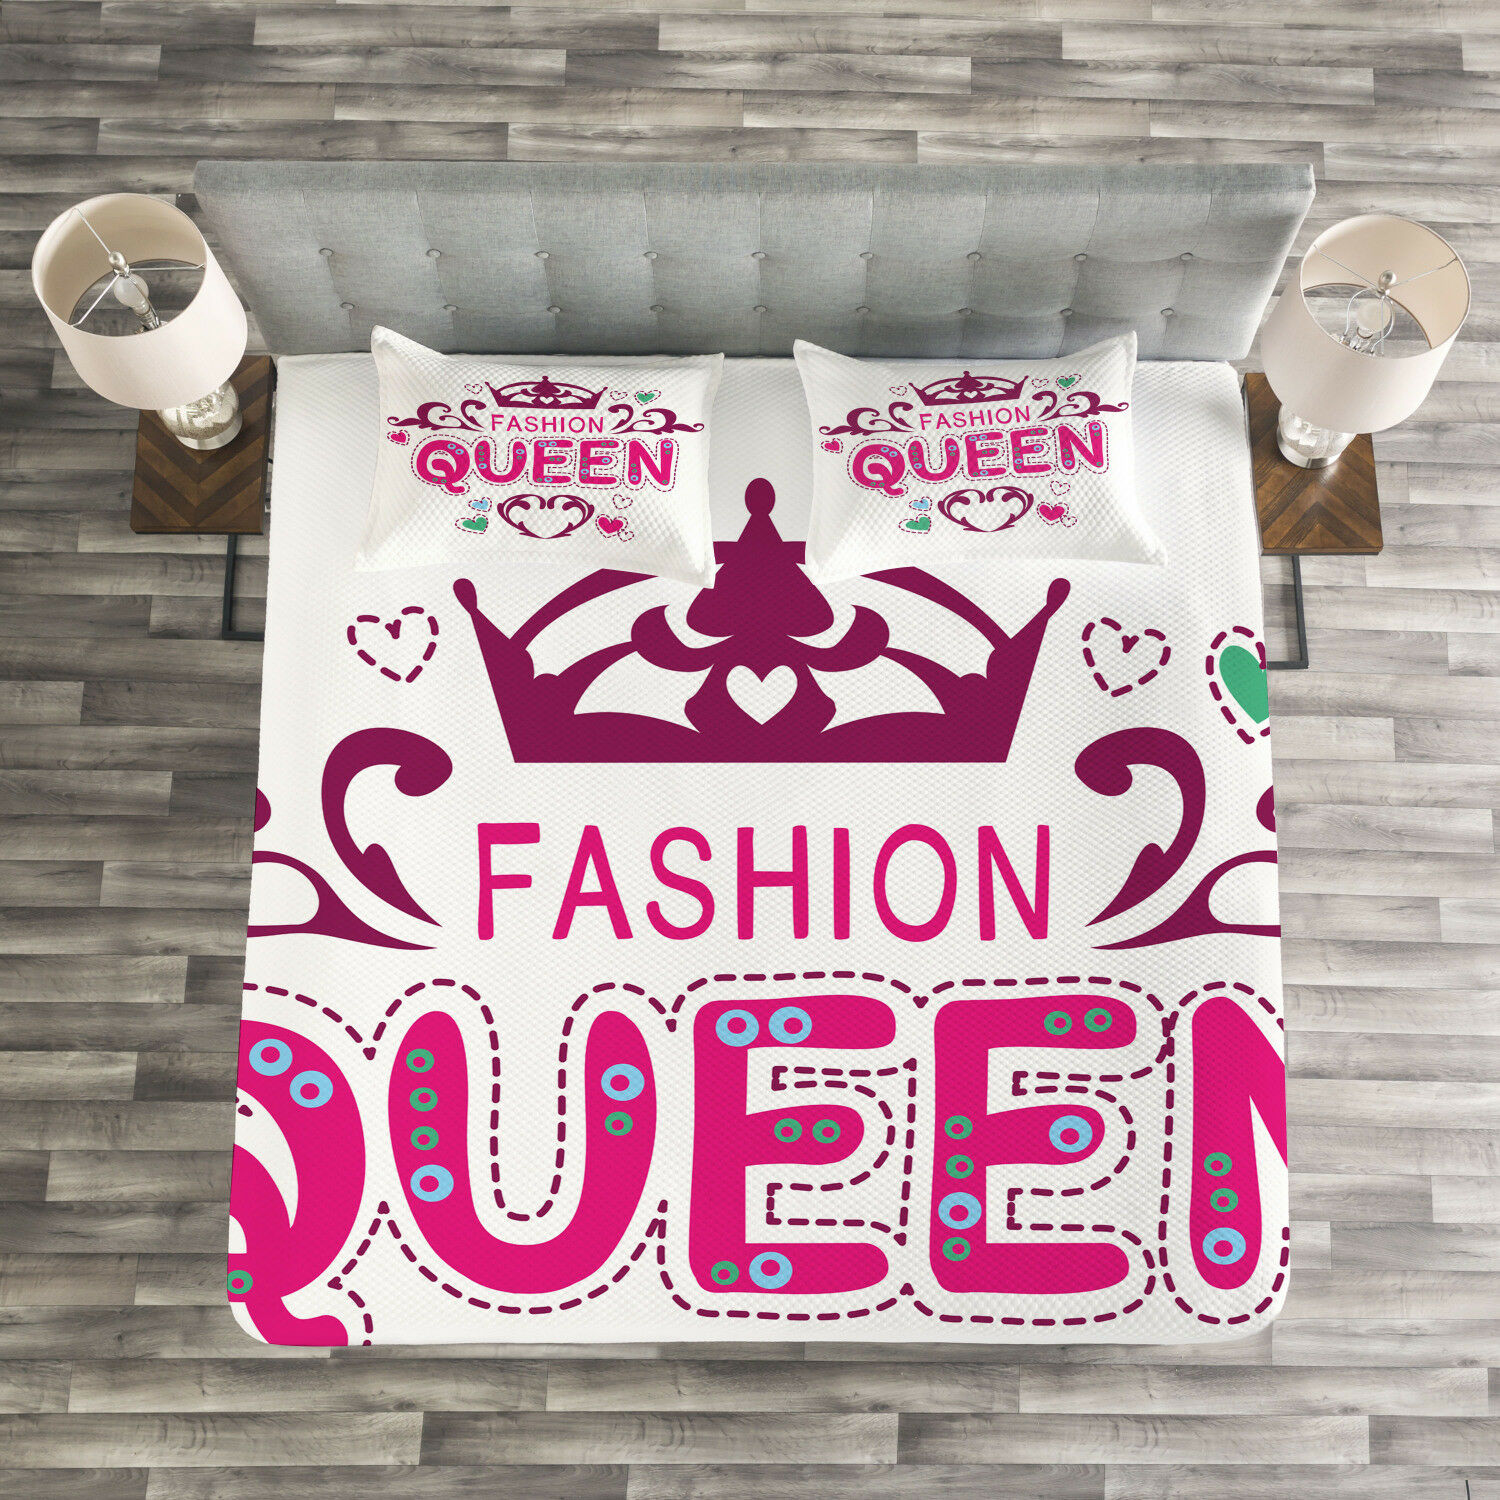 Queen Quilted Bedspread & Pillow Shams Set, Fancy Girlish Fashion Print